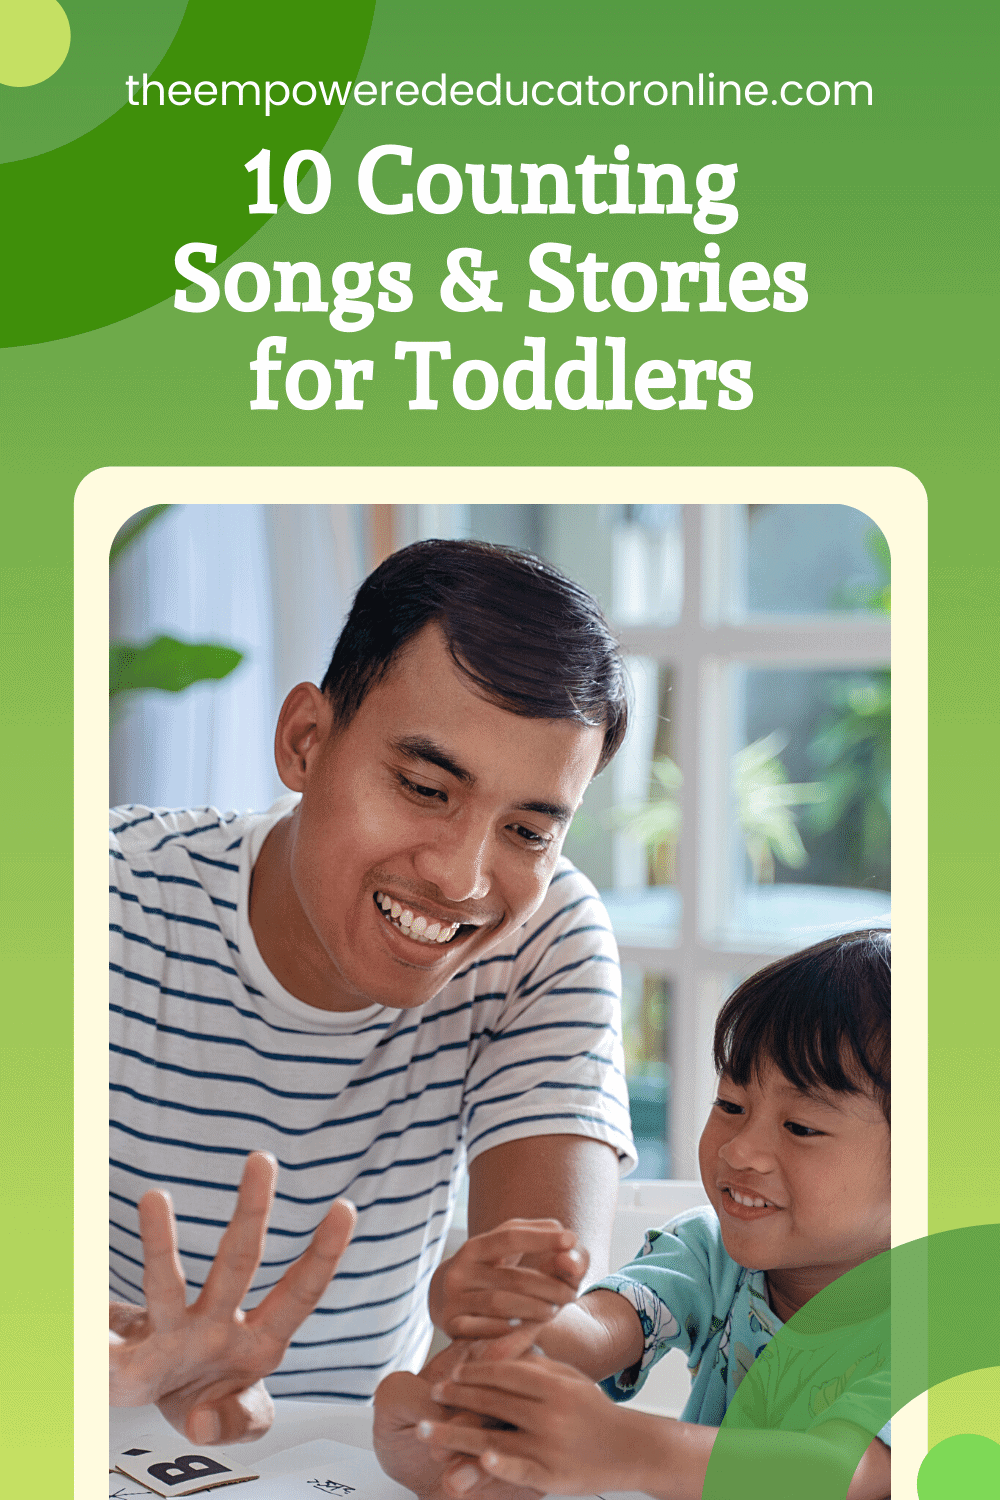 10 simple counting games/songs/books for toddlers